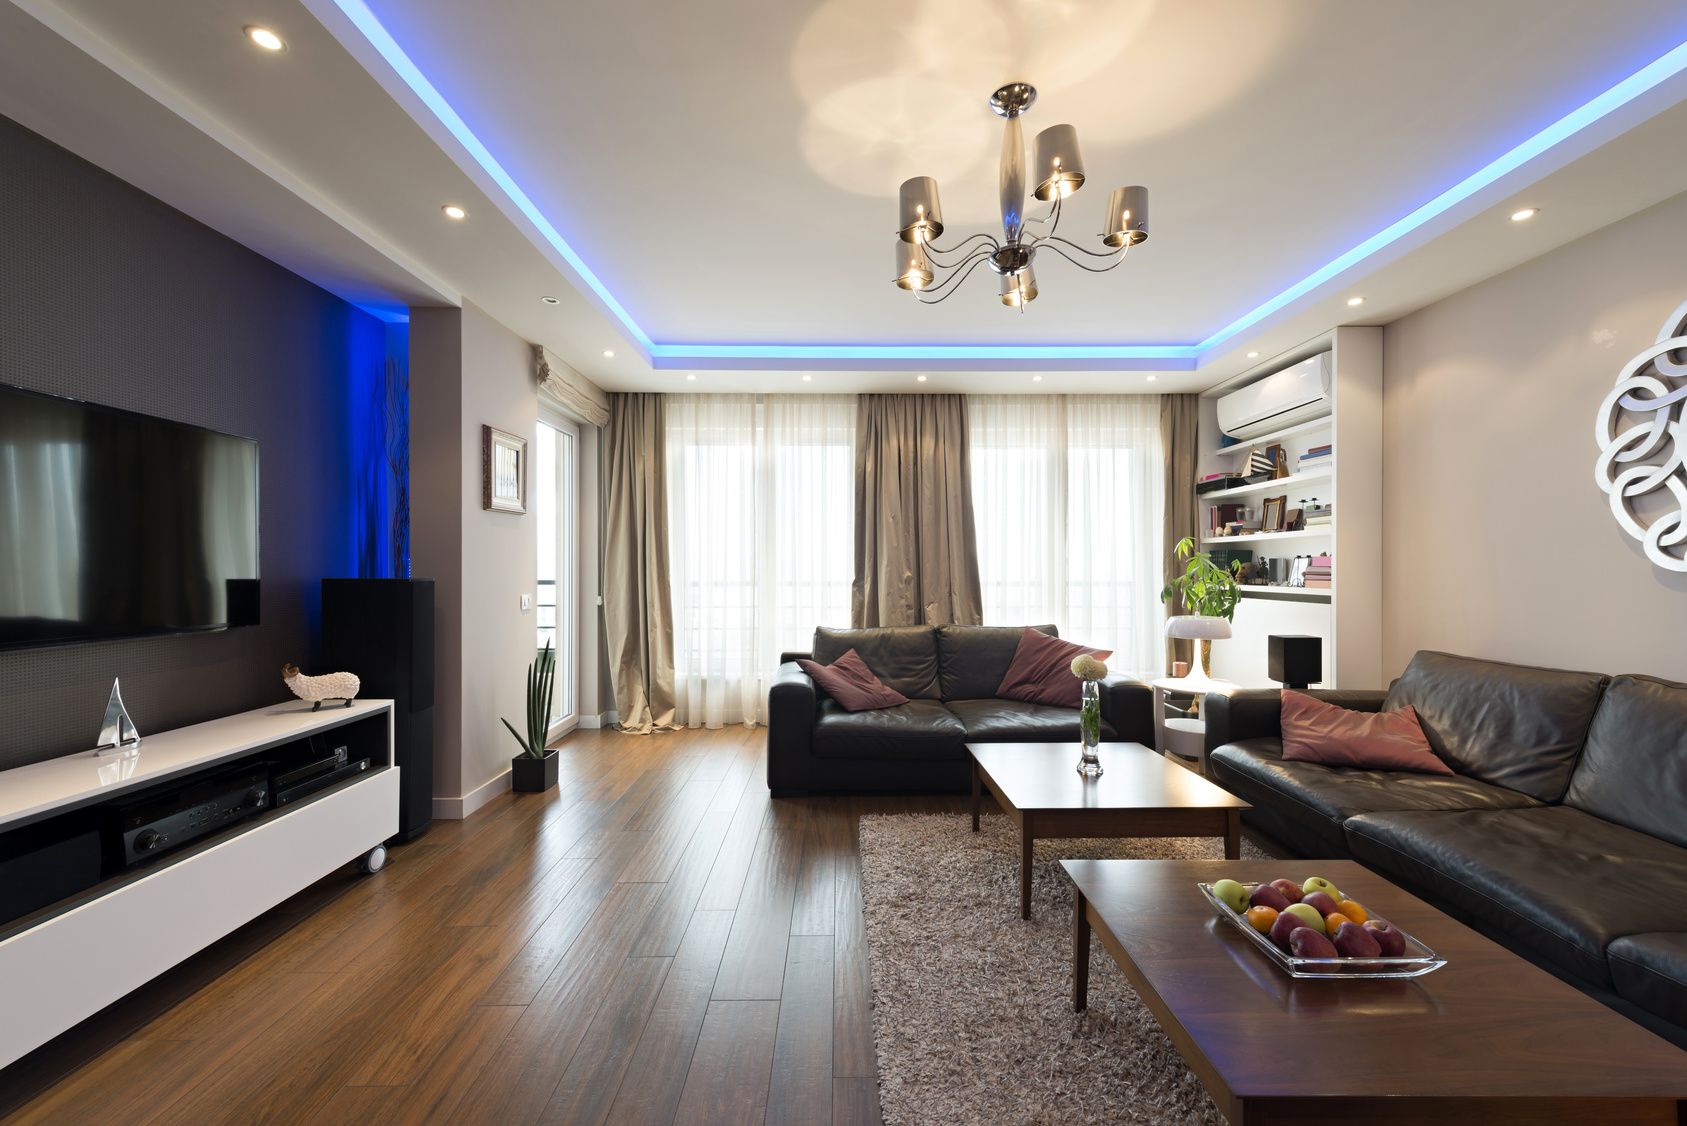 Use Lighting to Change the Mood of Your Room